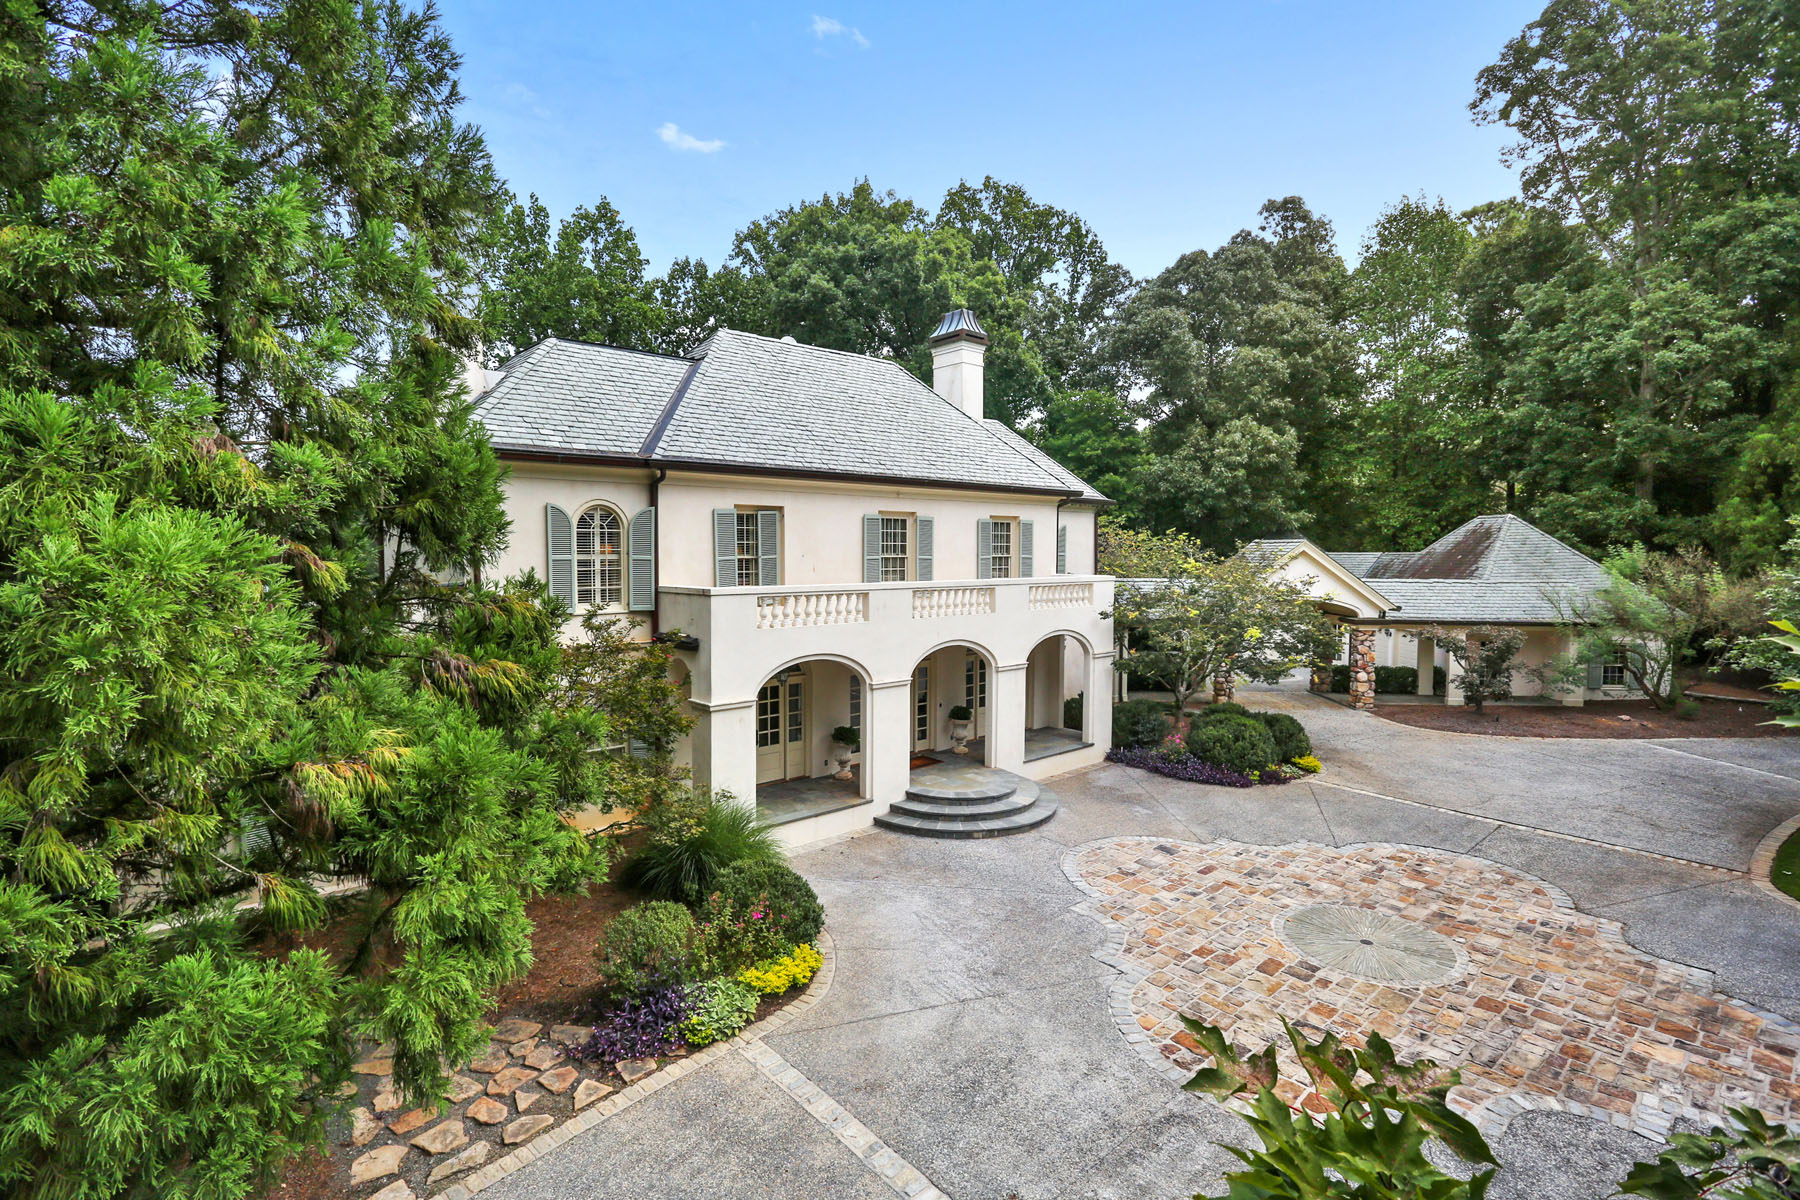 Additional photo for property listing at Resort Style Property on 2.4 Acres 711 Heards Ferry Road Sandy Springs, Georgia 30328 United States